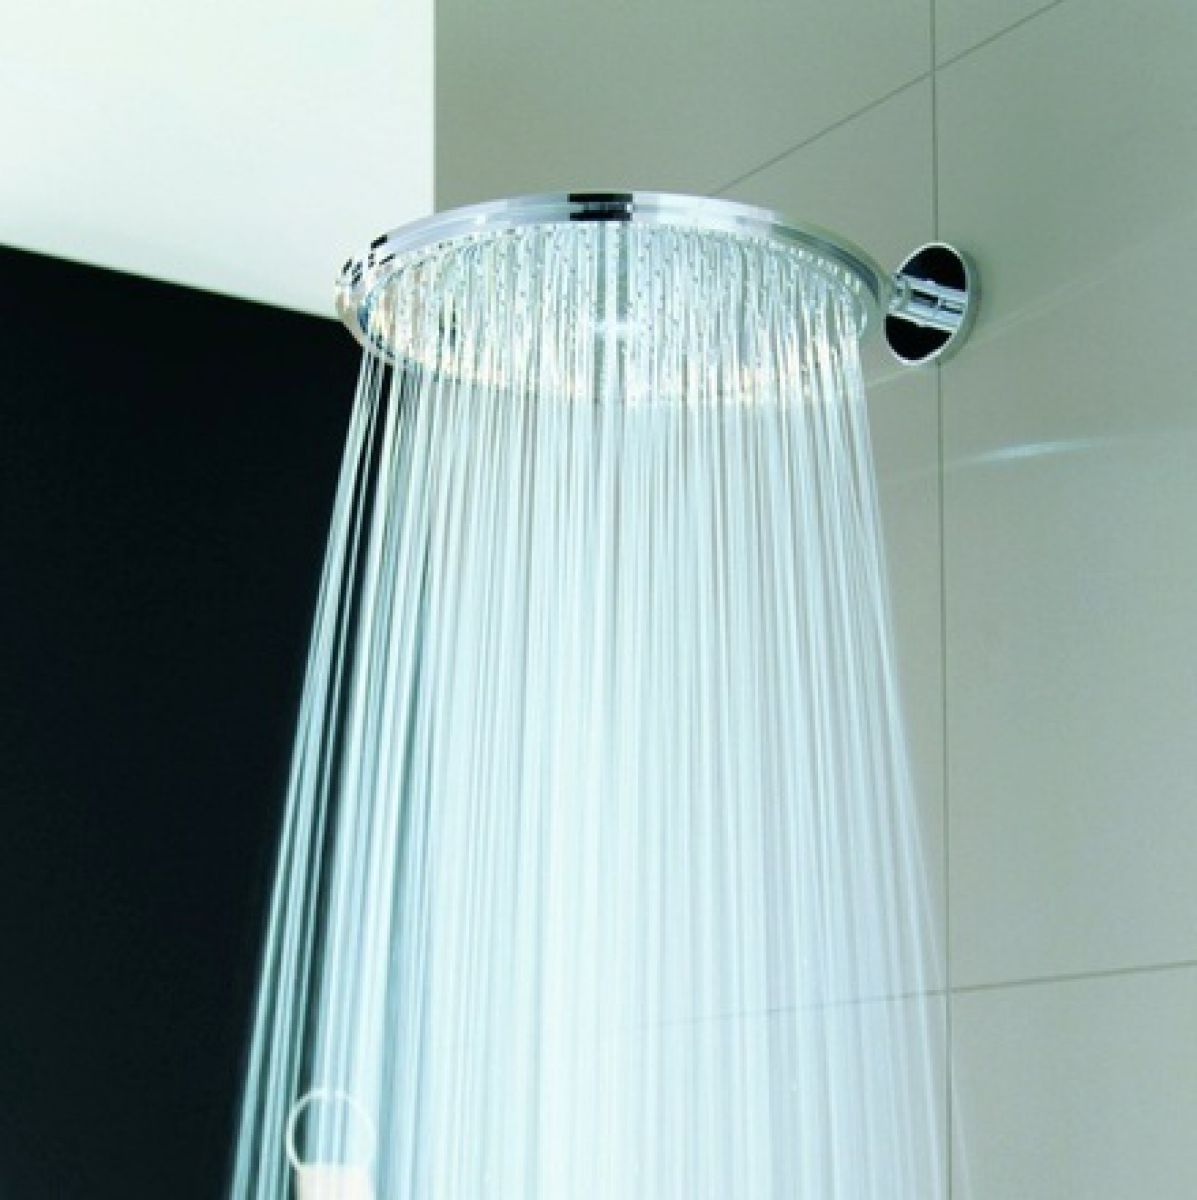 grohe rainshower 400mm jumbo shower head - Rain Shower Heads